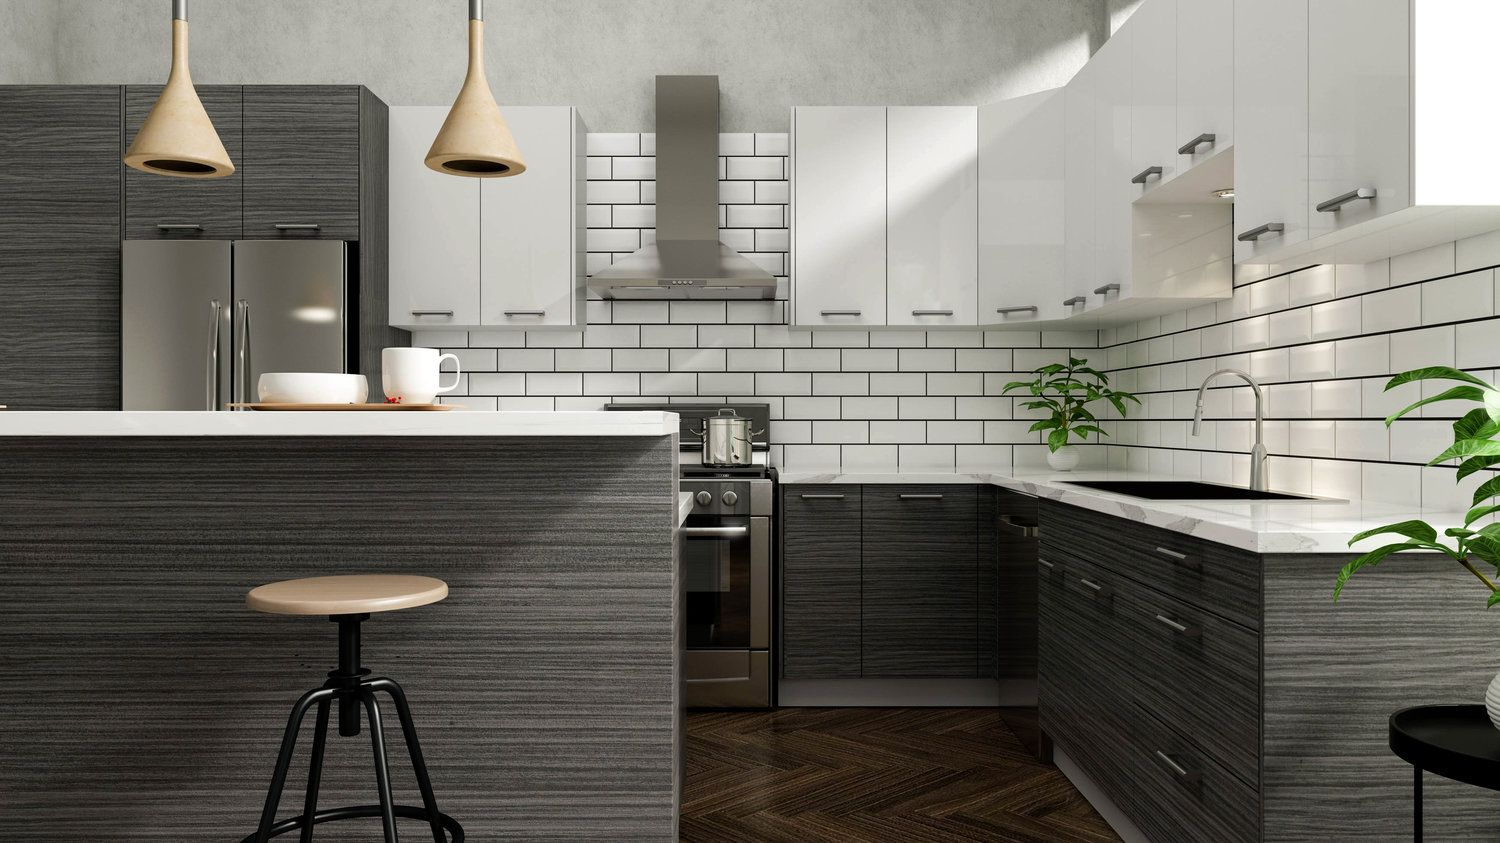 Dark Wood Door Style Slab Horizontal Wood Grain Actual Thickness 18mm Laminate On Both Side Of Pan Kitchen Remodel Kitchen Renovation Affordable Cabinets